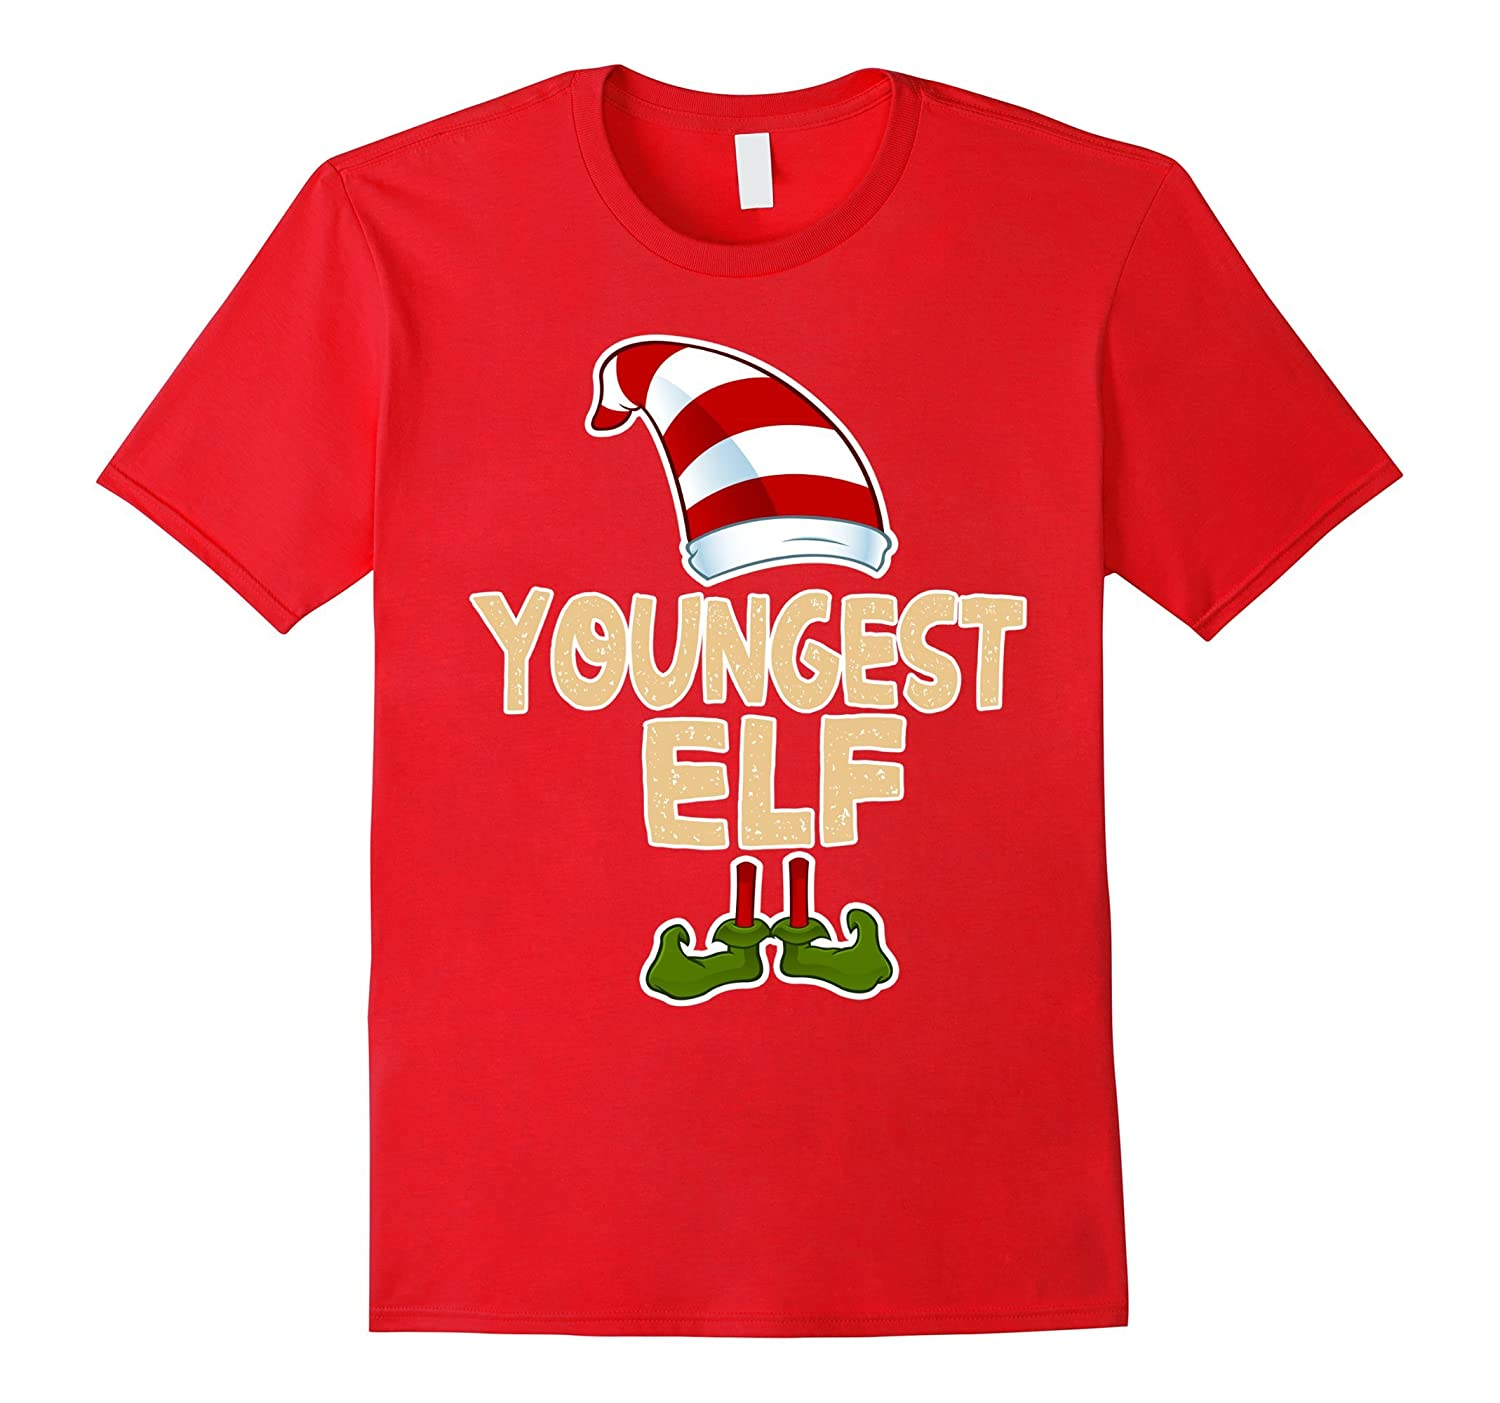 Youngest Elf Shirt Funny Merry Christmas Costume Gift TShirt-ANZ